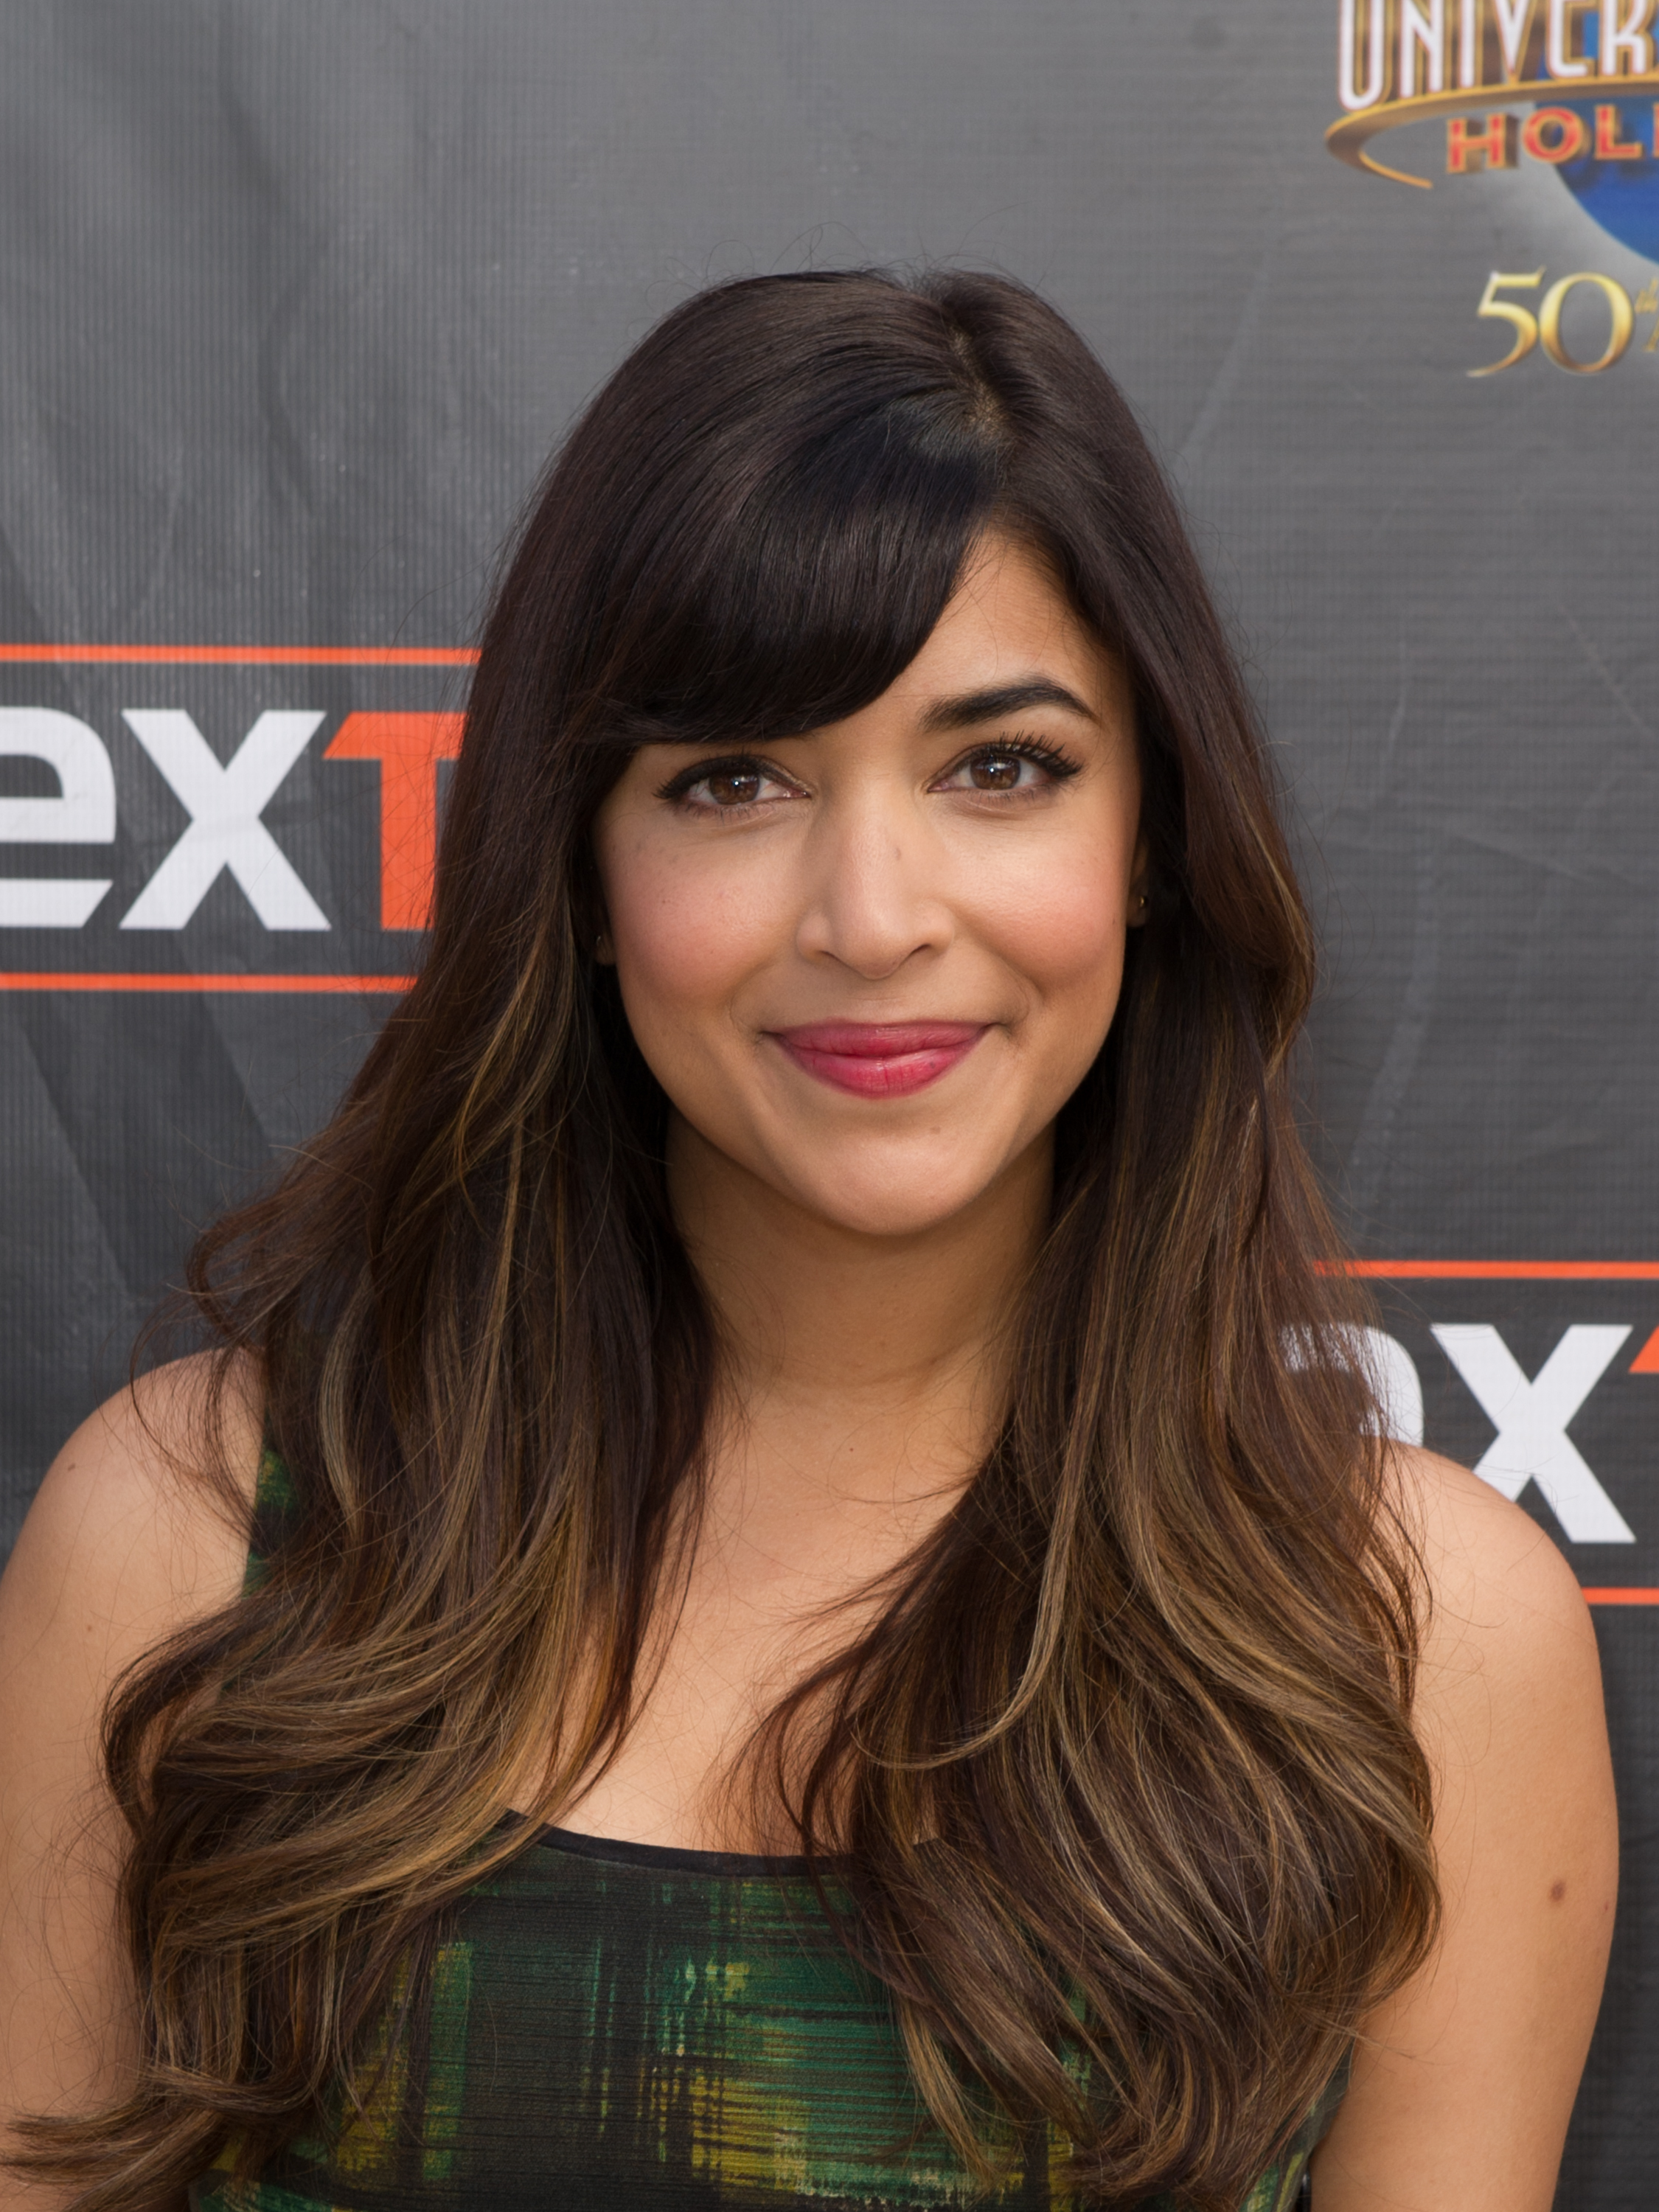 Outstanding 100 Hairstyles With Bangs You39Ll Want To Copy Celebrity Haircuts Short Hairstyles Gunalazisus